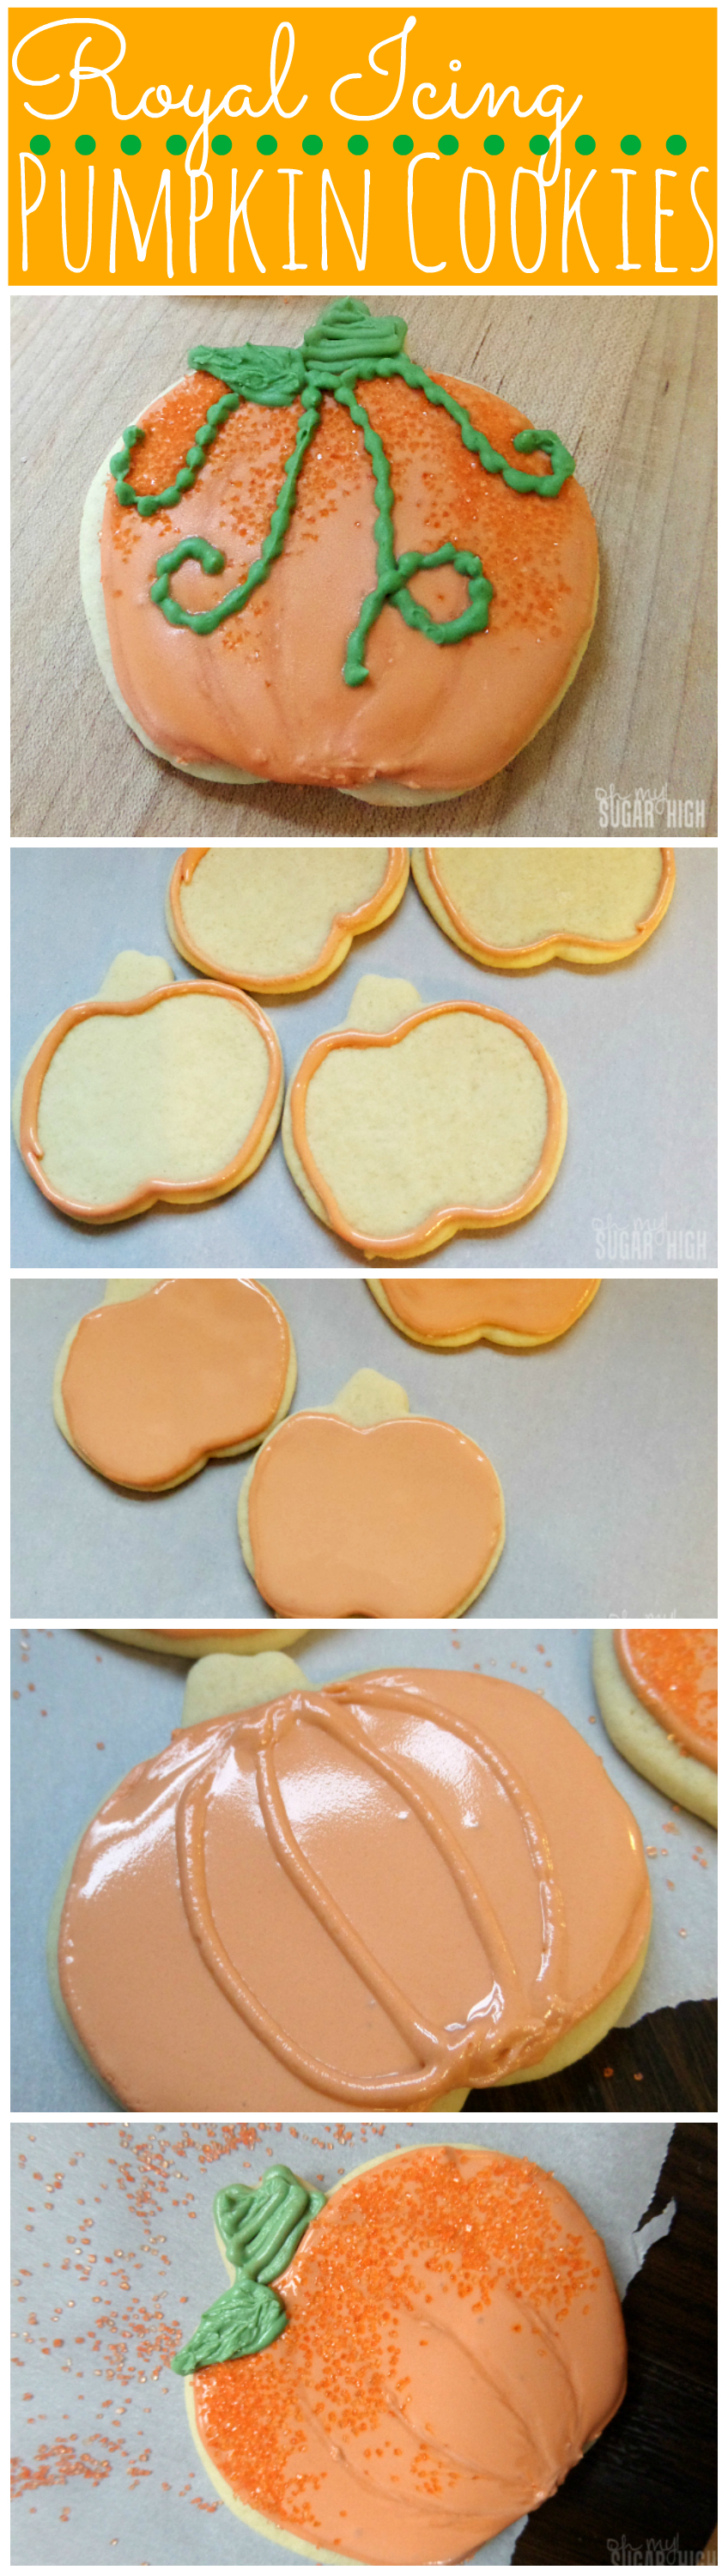 Pumpkin Cookies with Royal Icing Tutorial